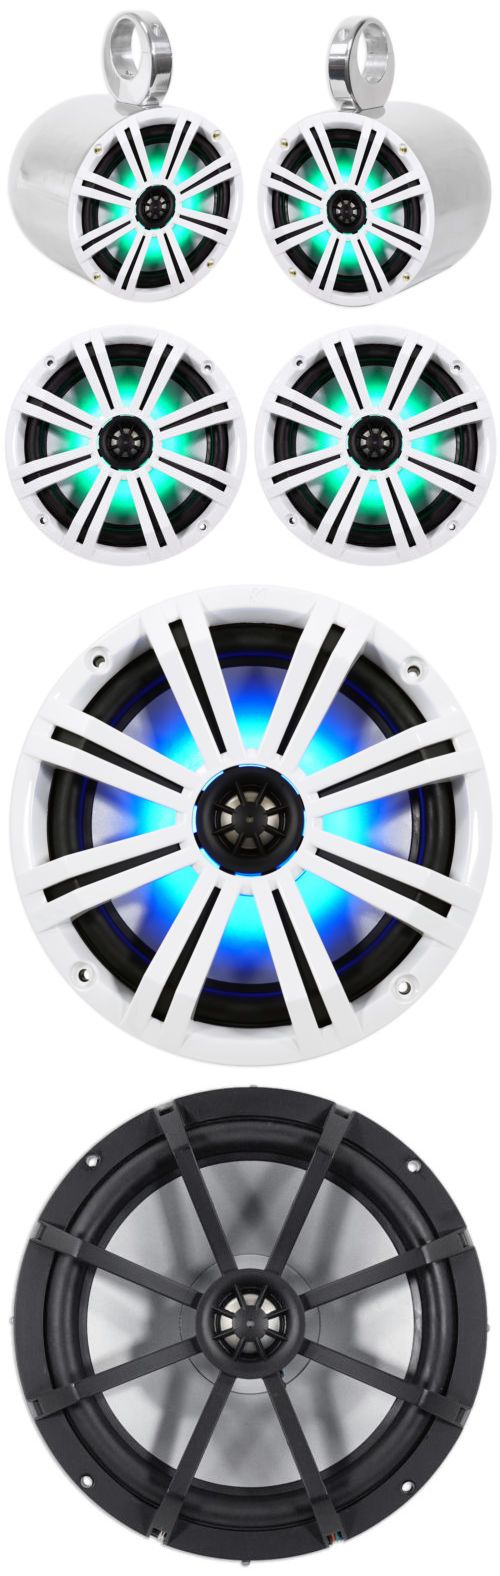 Marine Audio: Pair Kicker 43Km84lcw 8 600 Watt Marine Boat Wakeboard Tower Speakers W/ Leds -> BUY IT NOW ONLY: $229.95 on eBay!